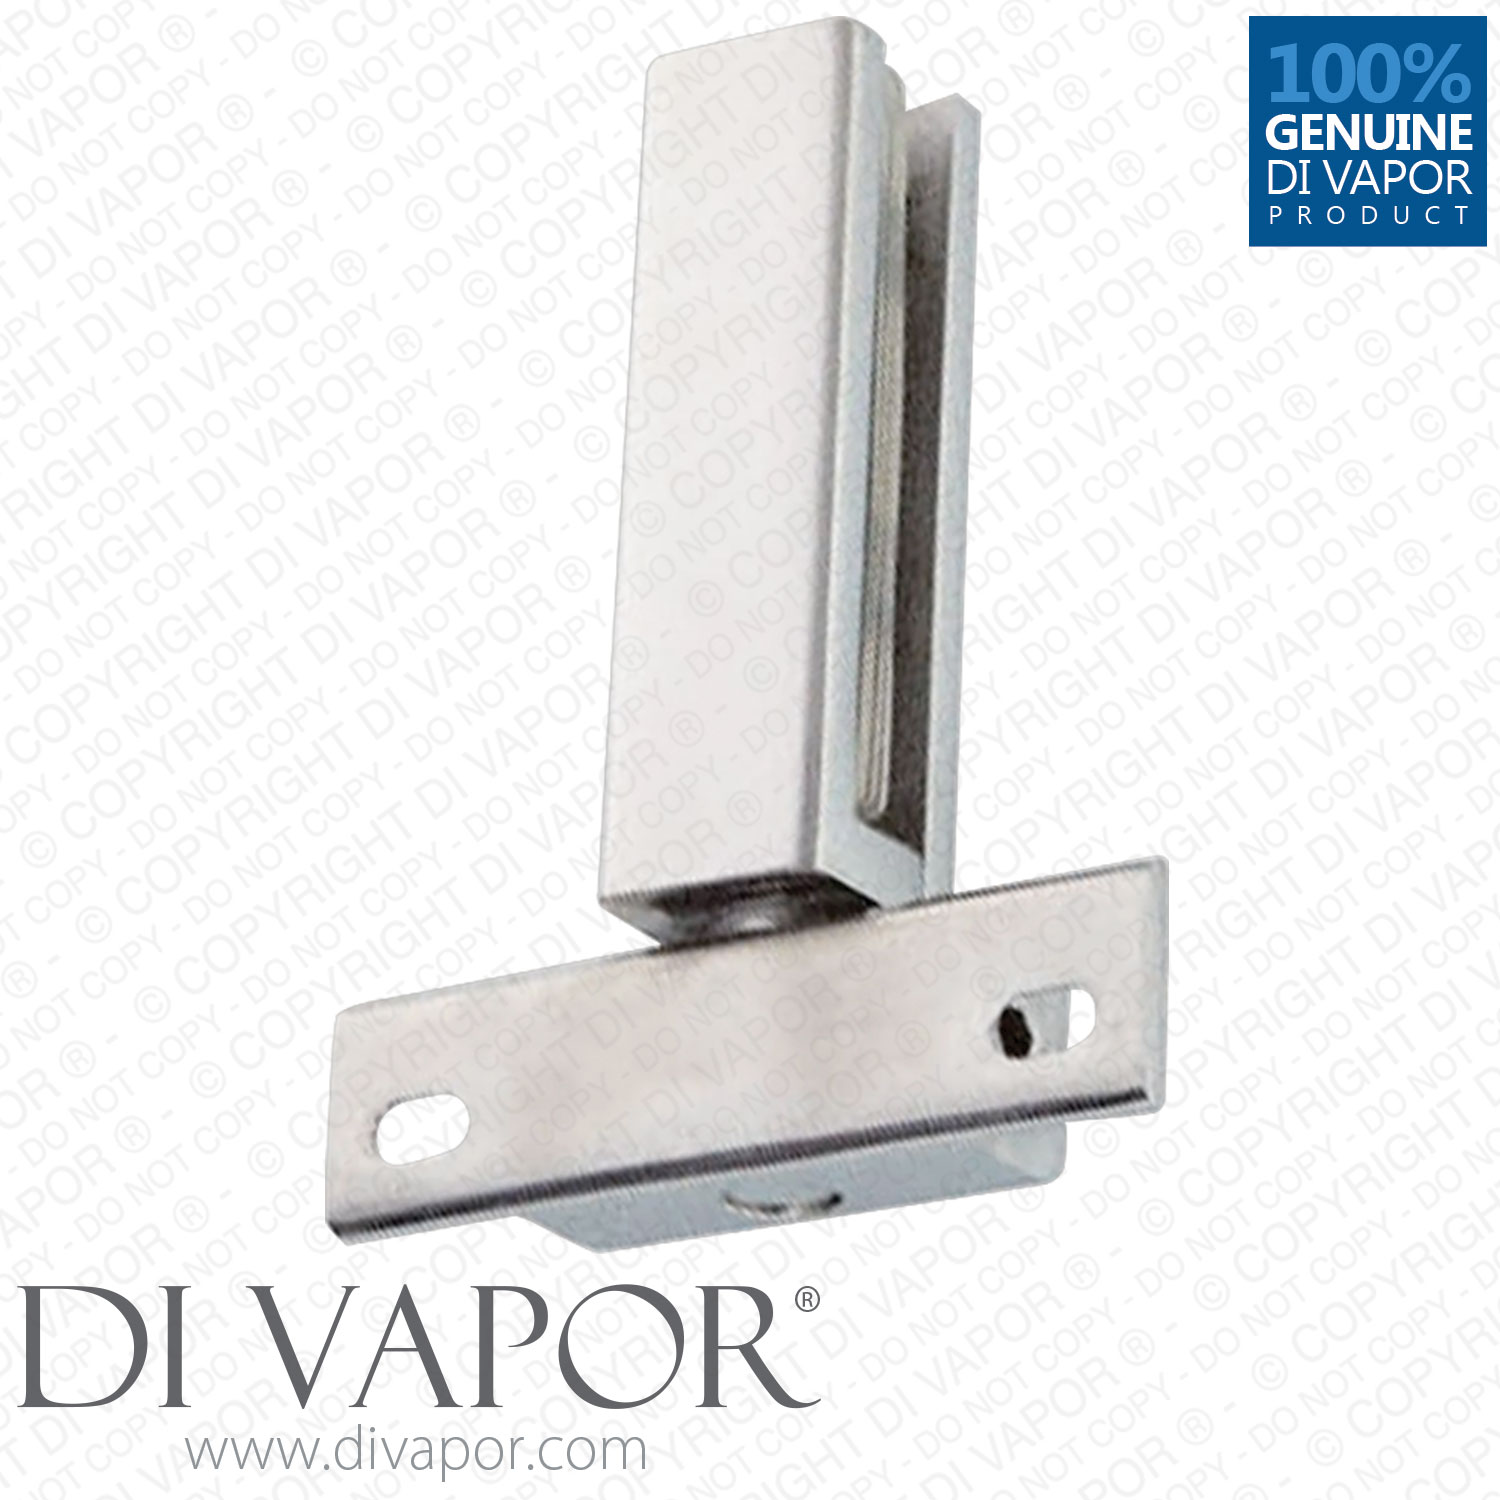 360 degree shower door pivot hinge part 40mm hole to hole for